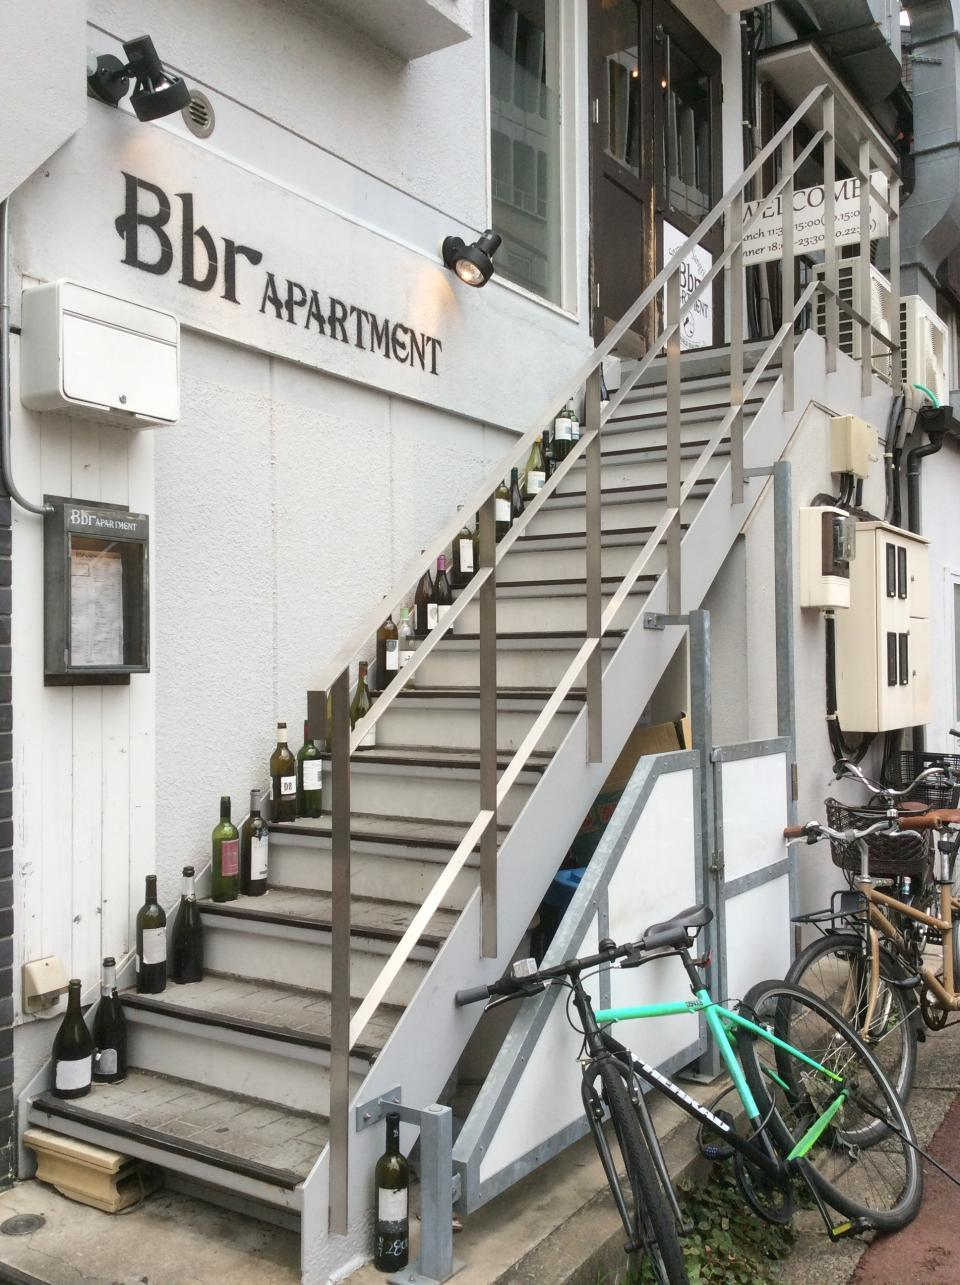 BbrAPERTMENT(店舗外観)